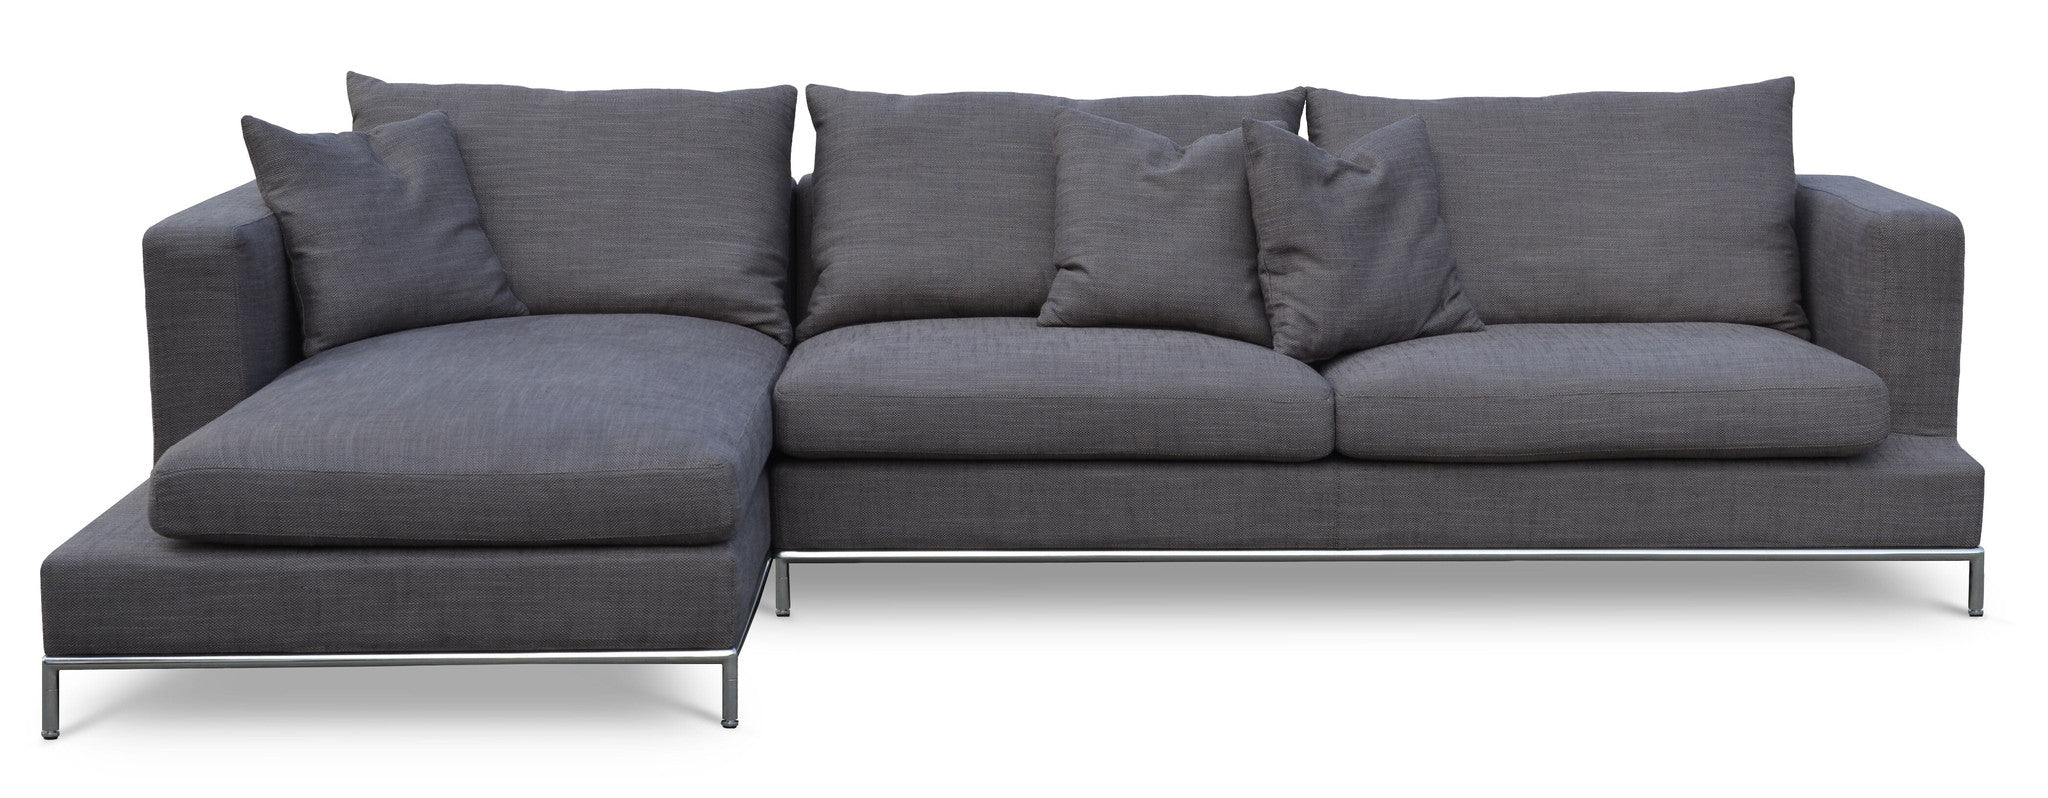 simena sectional as seen everywhere  – equilibrium - simena sectional as seen everywhere